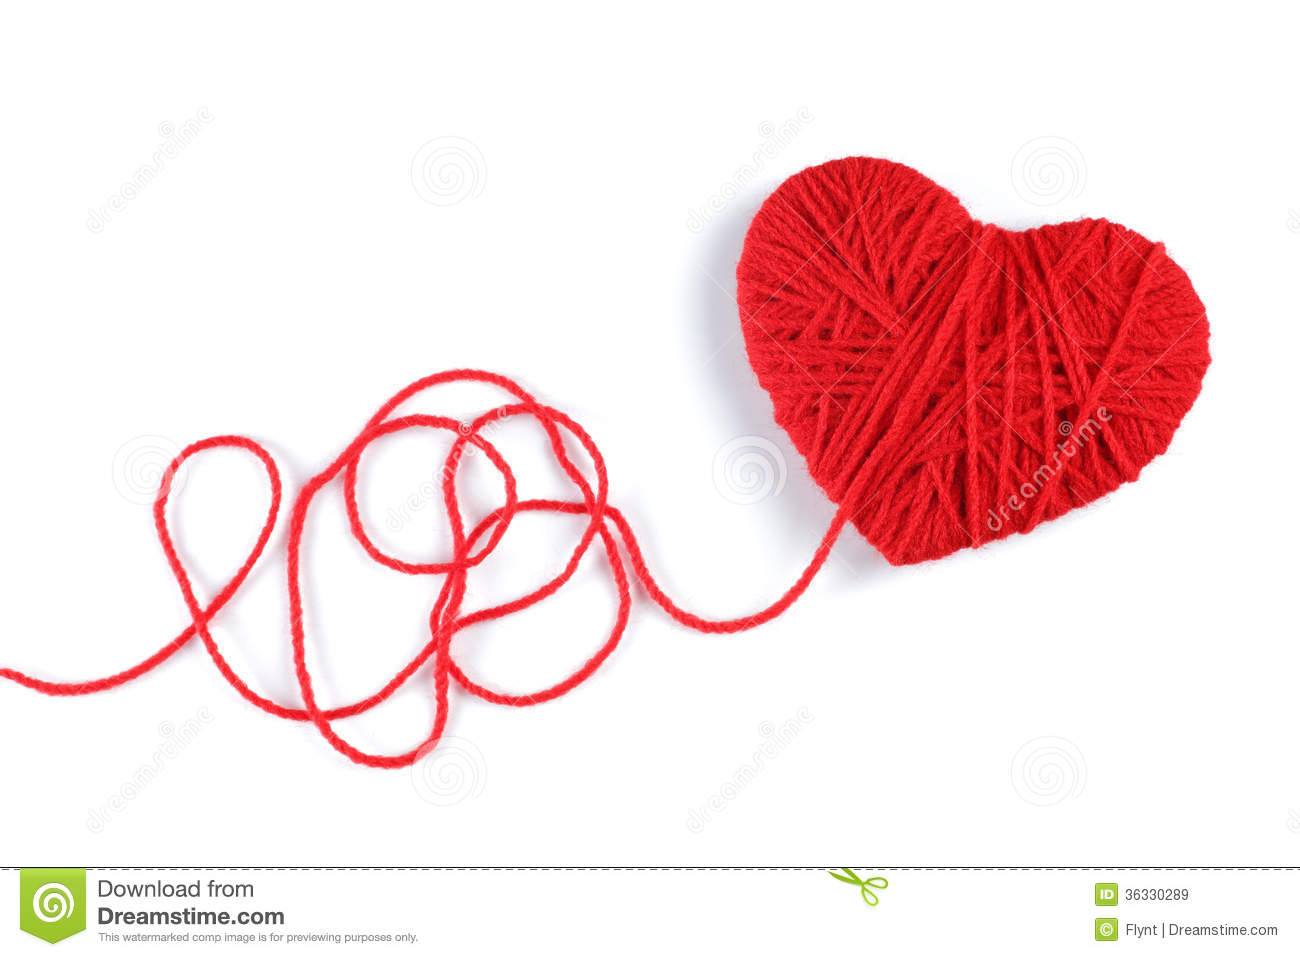 Yarn Giveaway Time! The Red Heart Amore Giveaway is open to US addresses only (void where prohibited) and ends October 8, , at am Central US time. To enter, use the Rafflecopter form below. If you are on mobile and have difficulty entering, please use a desktop computer to enter.